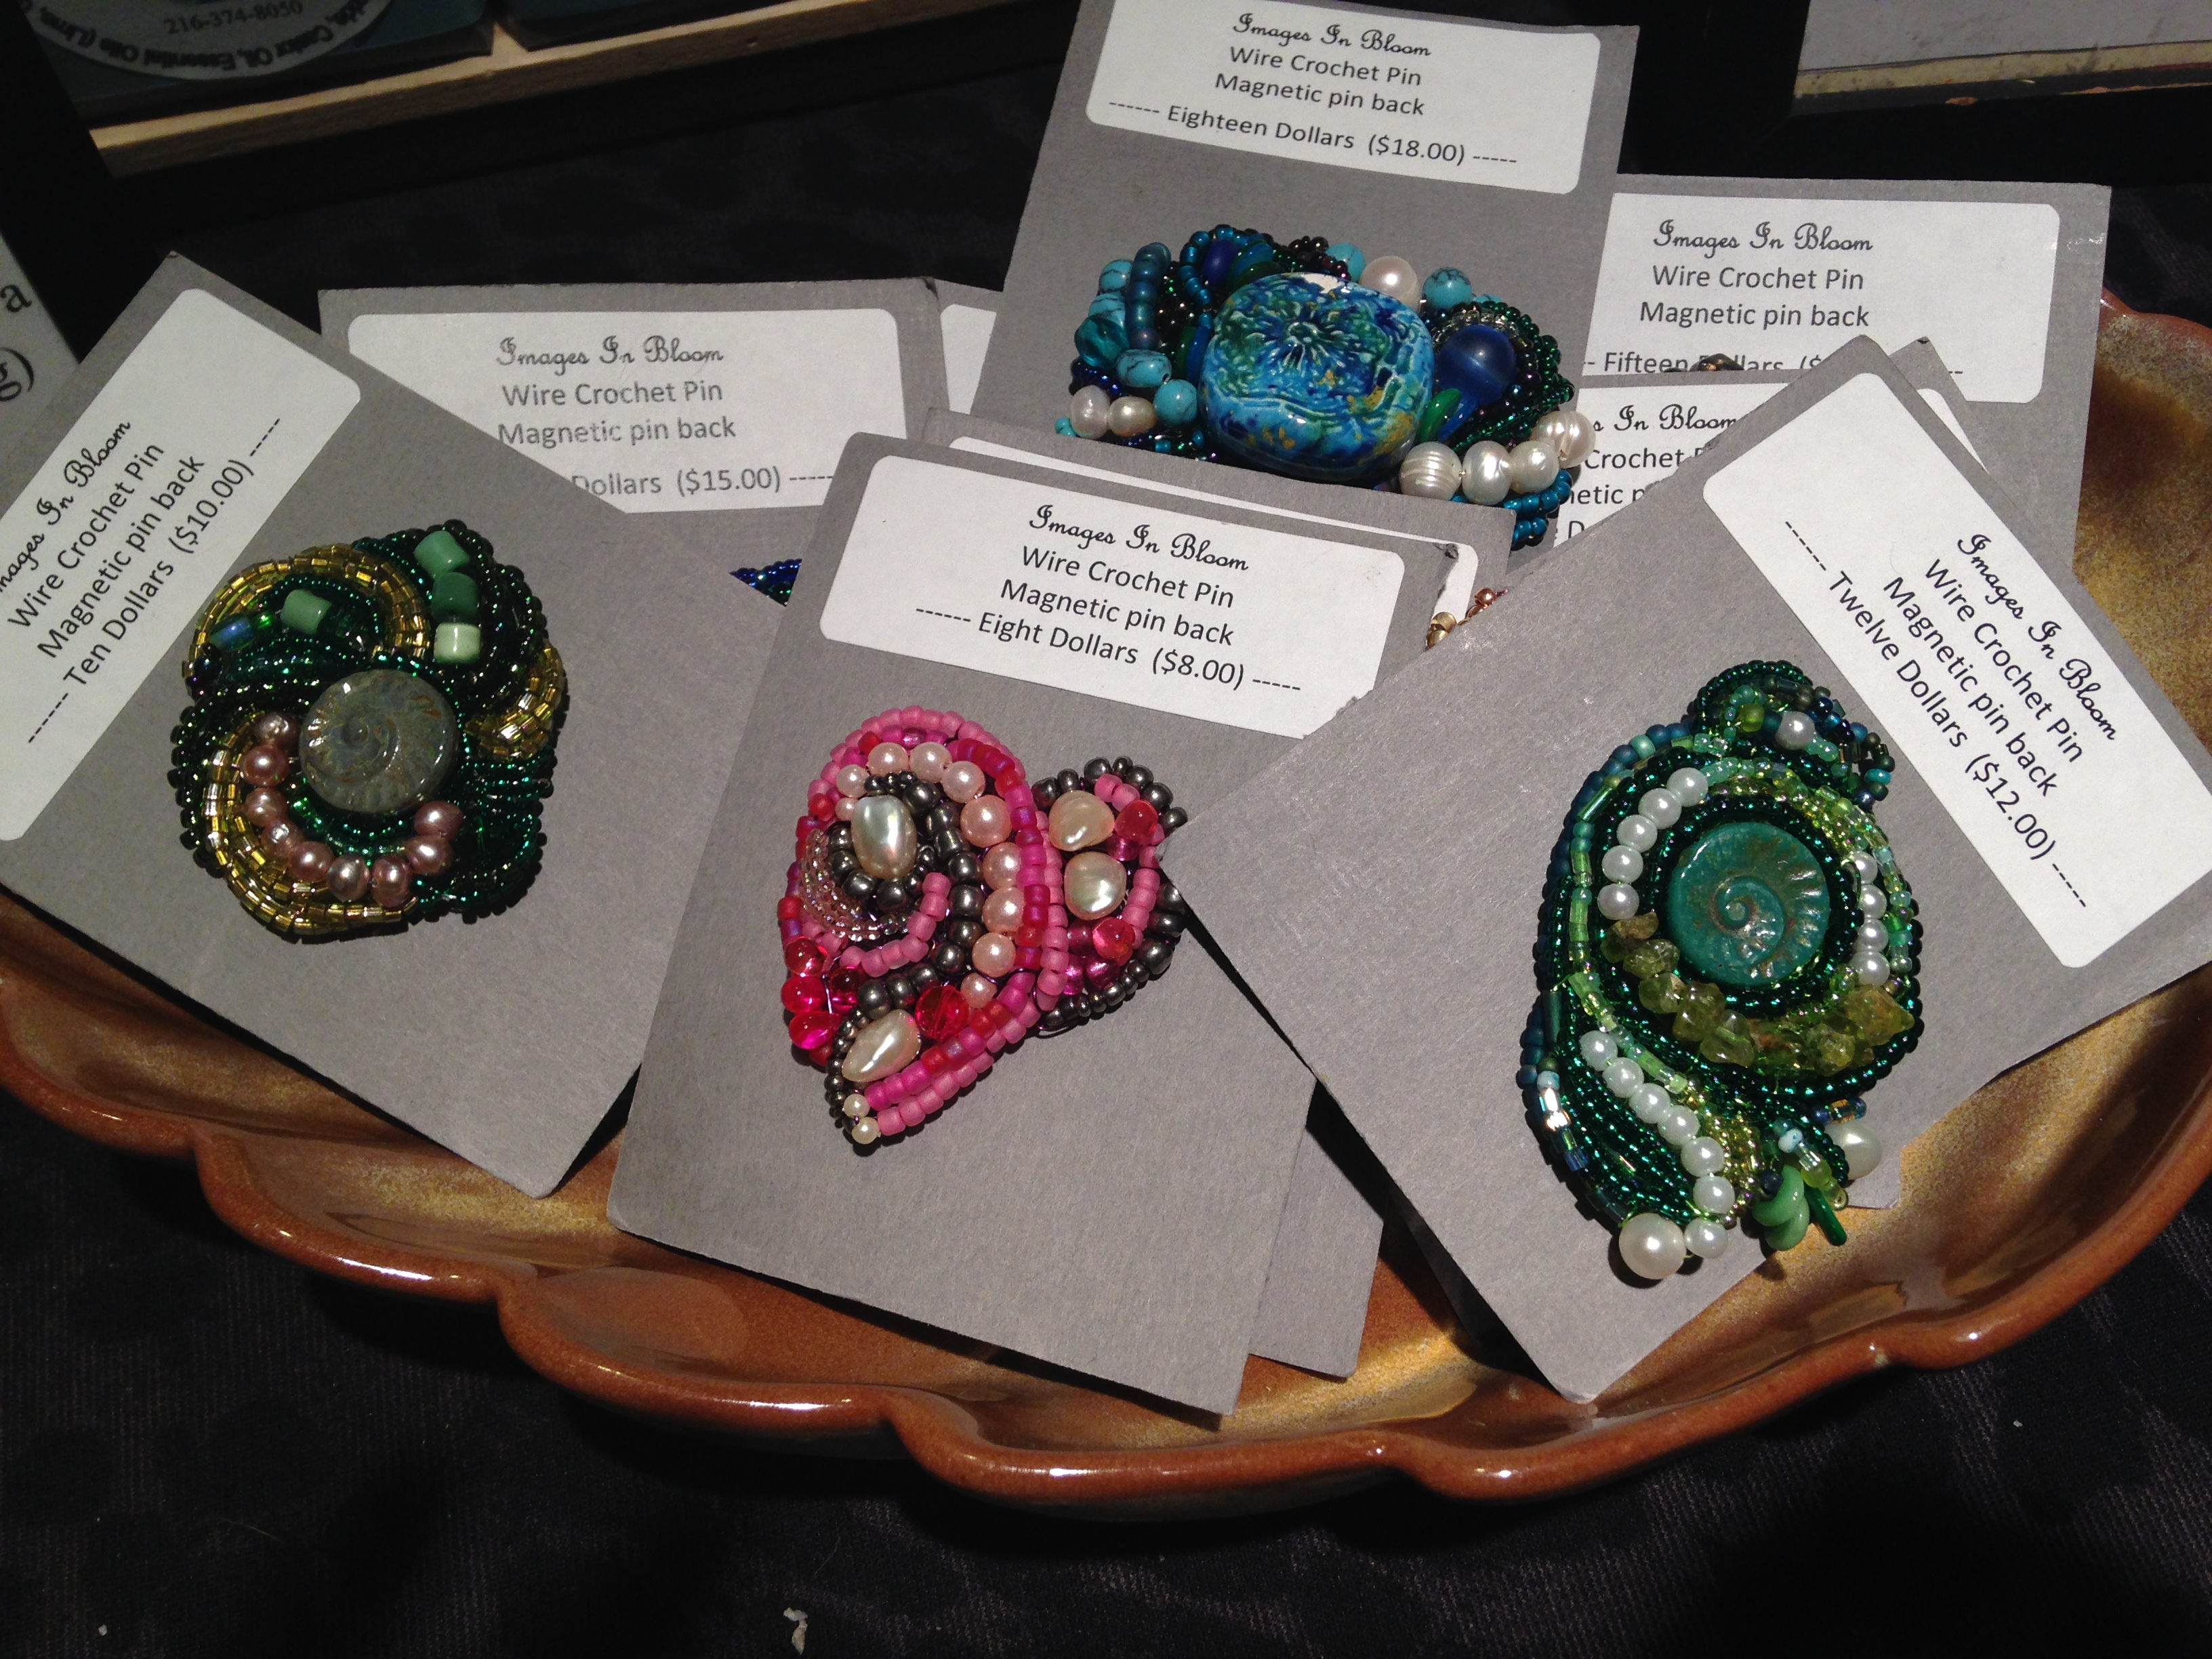 Wire Crochet Pins with magnetic pin backs